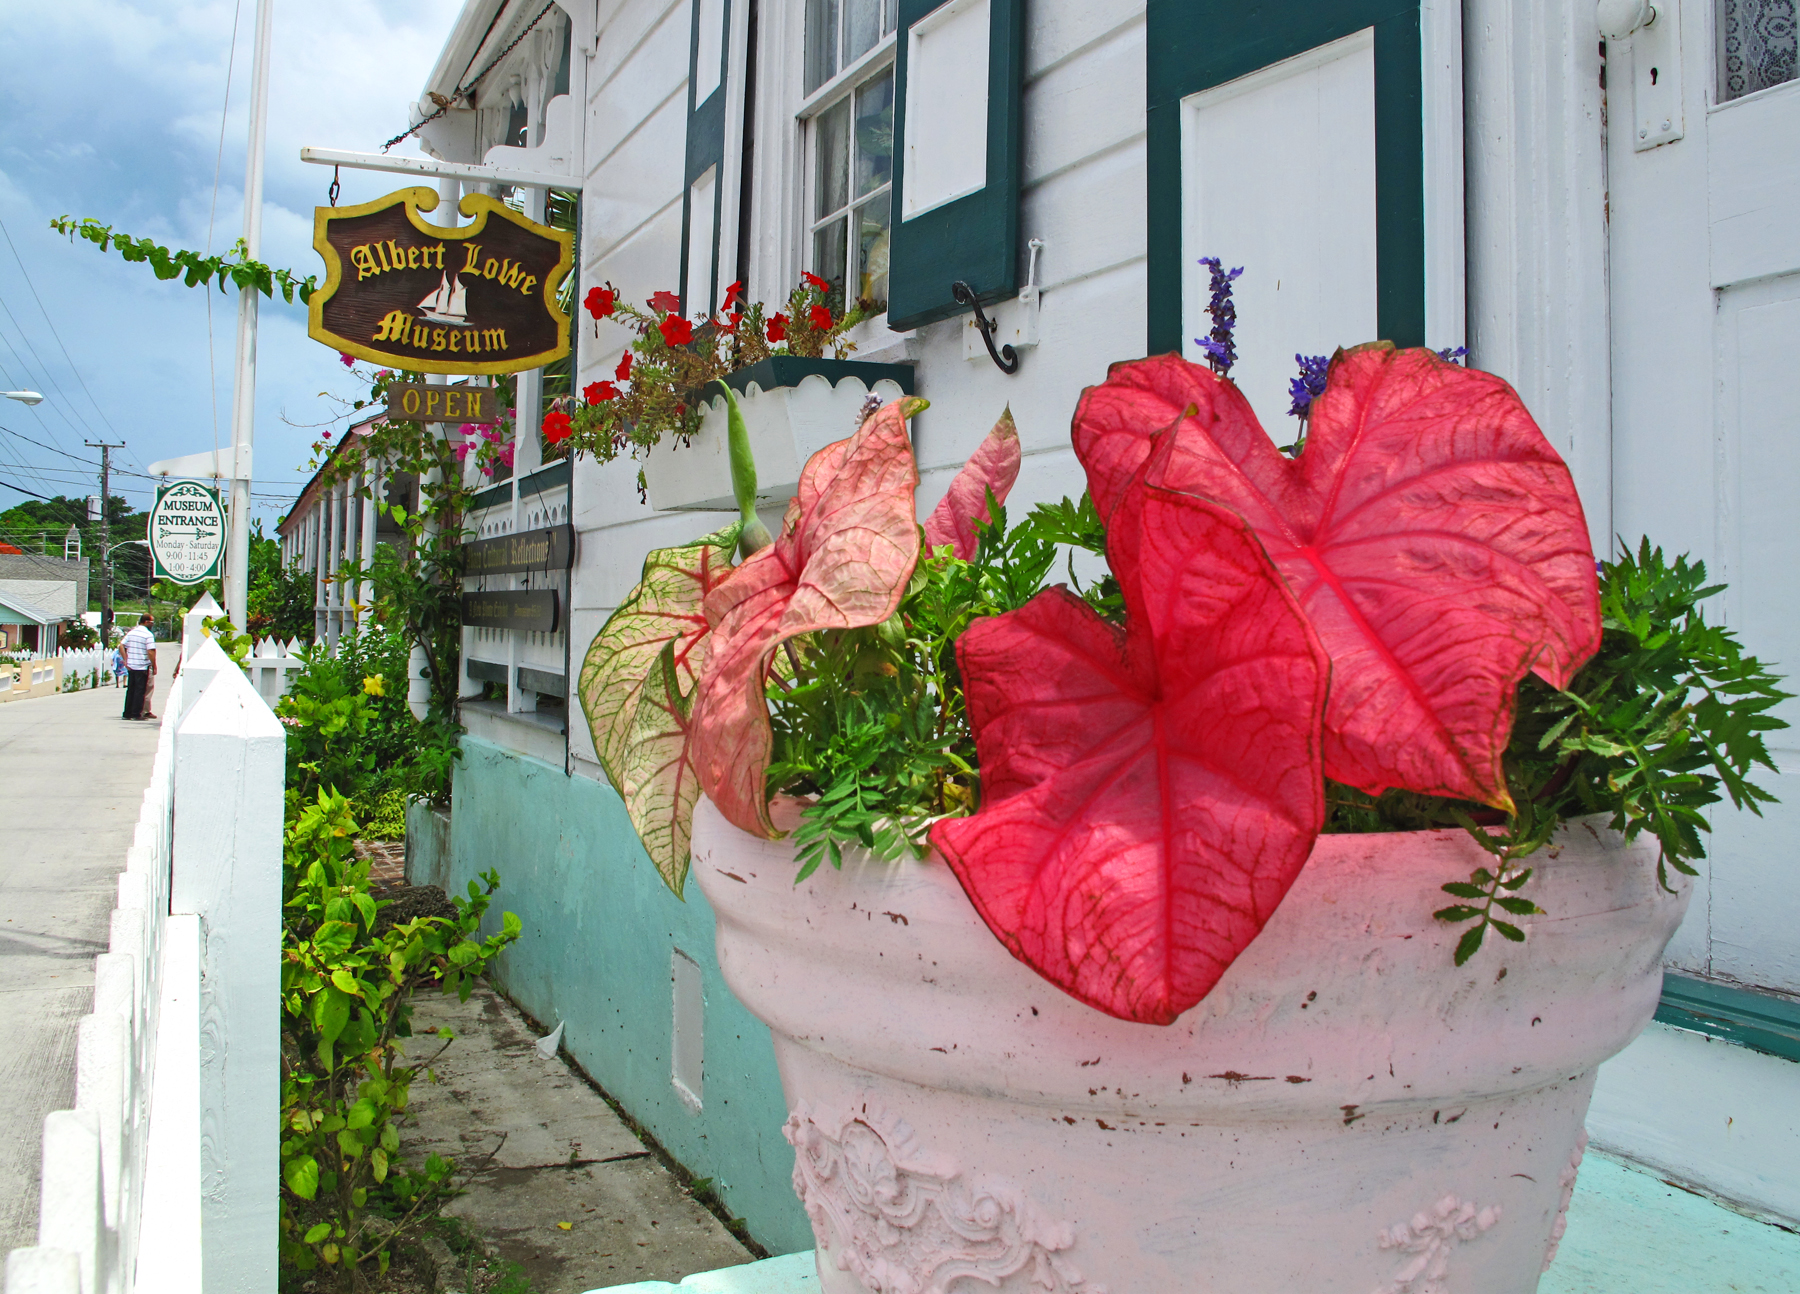 bahamas, abaco, green turtle cay, new plymouth, parliament street, tropical flower, Albert Lowe Museum, little house by the ferry